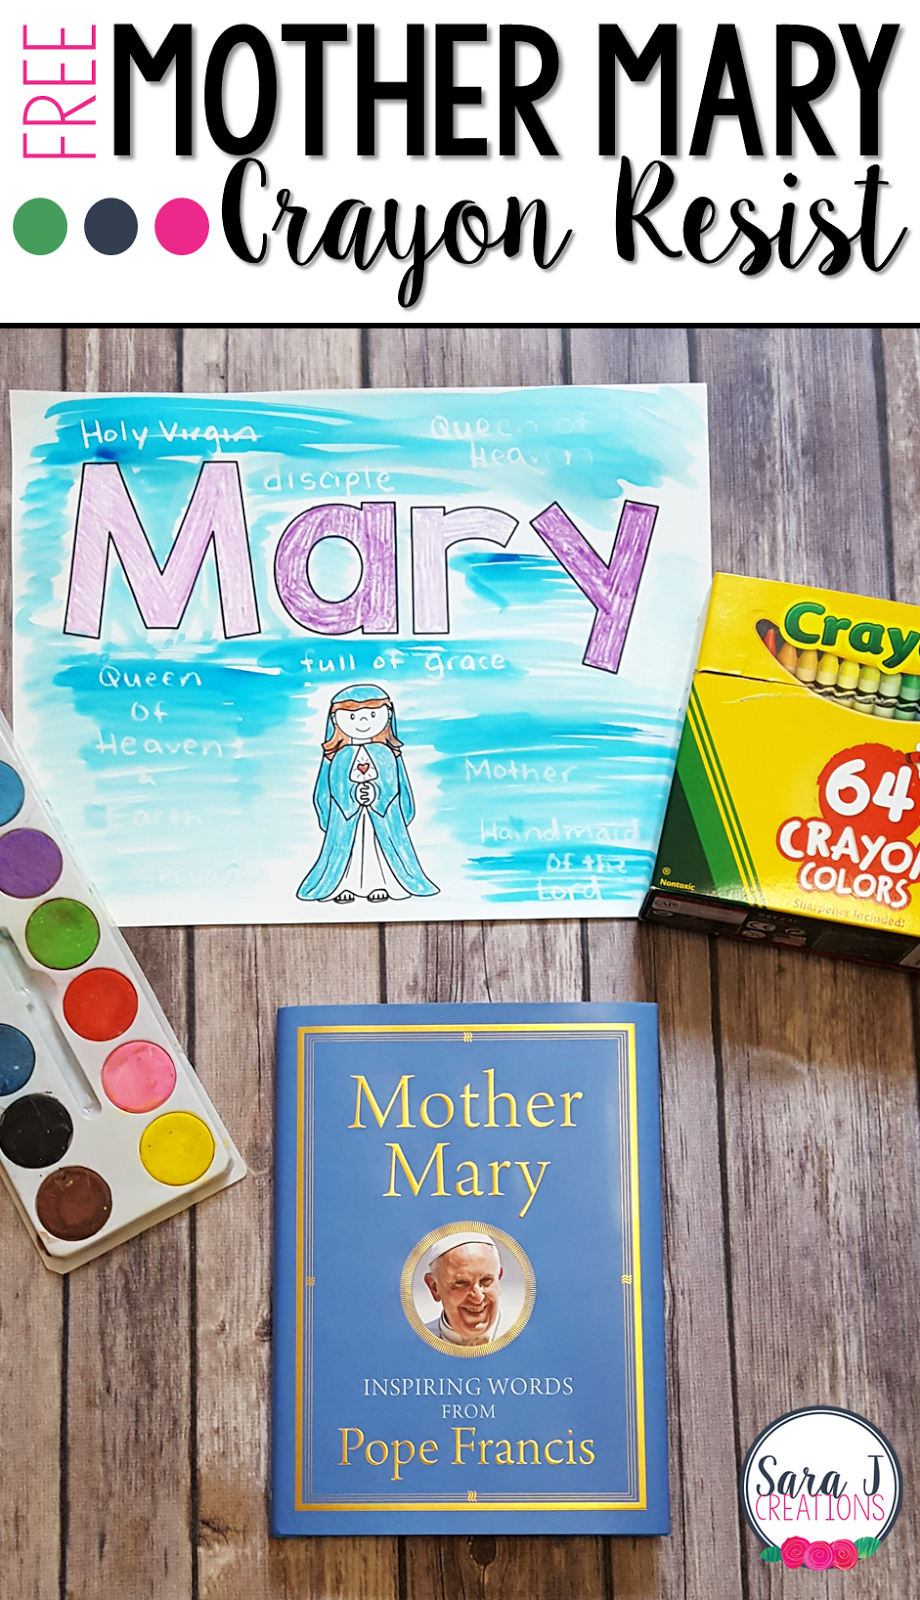 A book review and FREE craft idea for the book Mother Mary: Inspiring Words from Pope Francis.